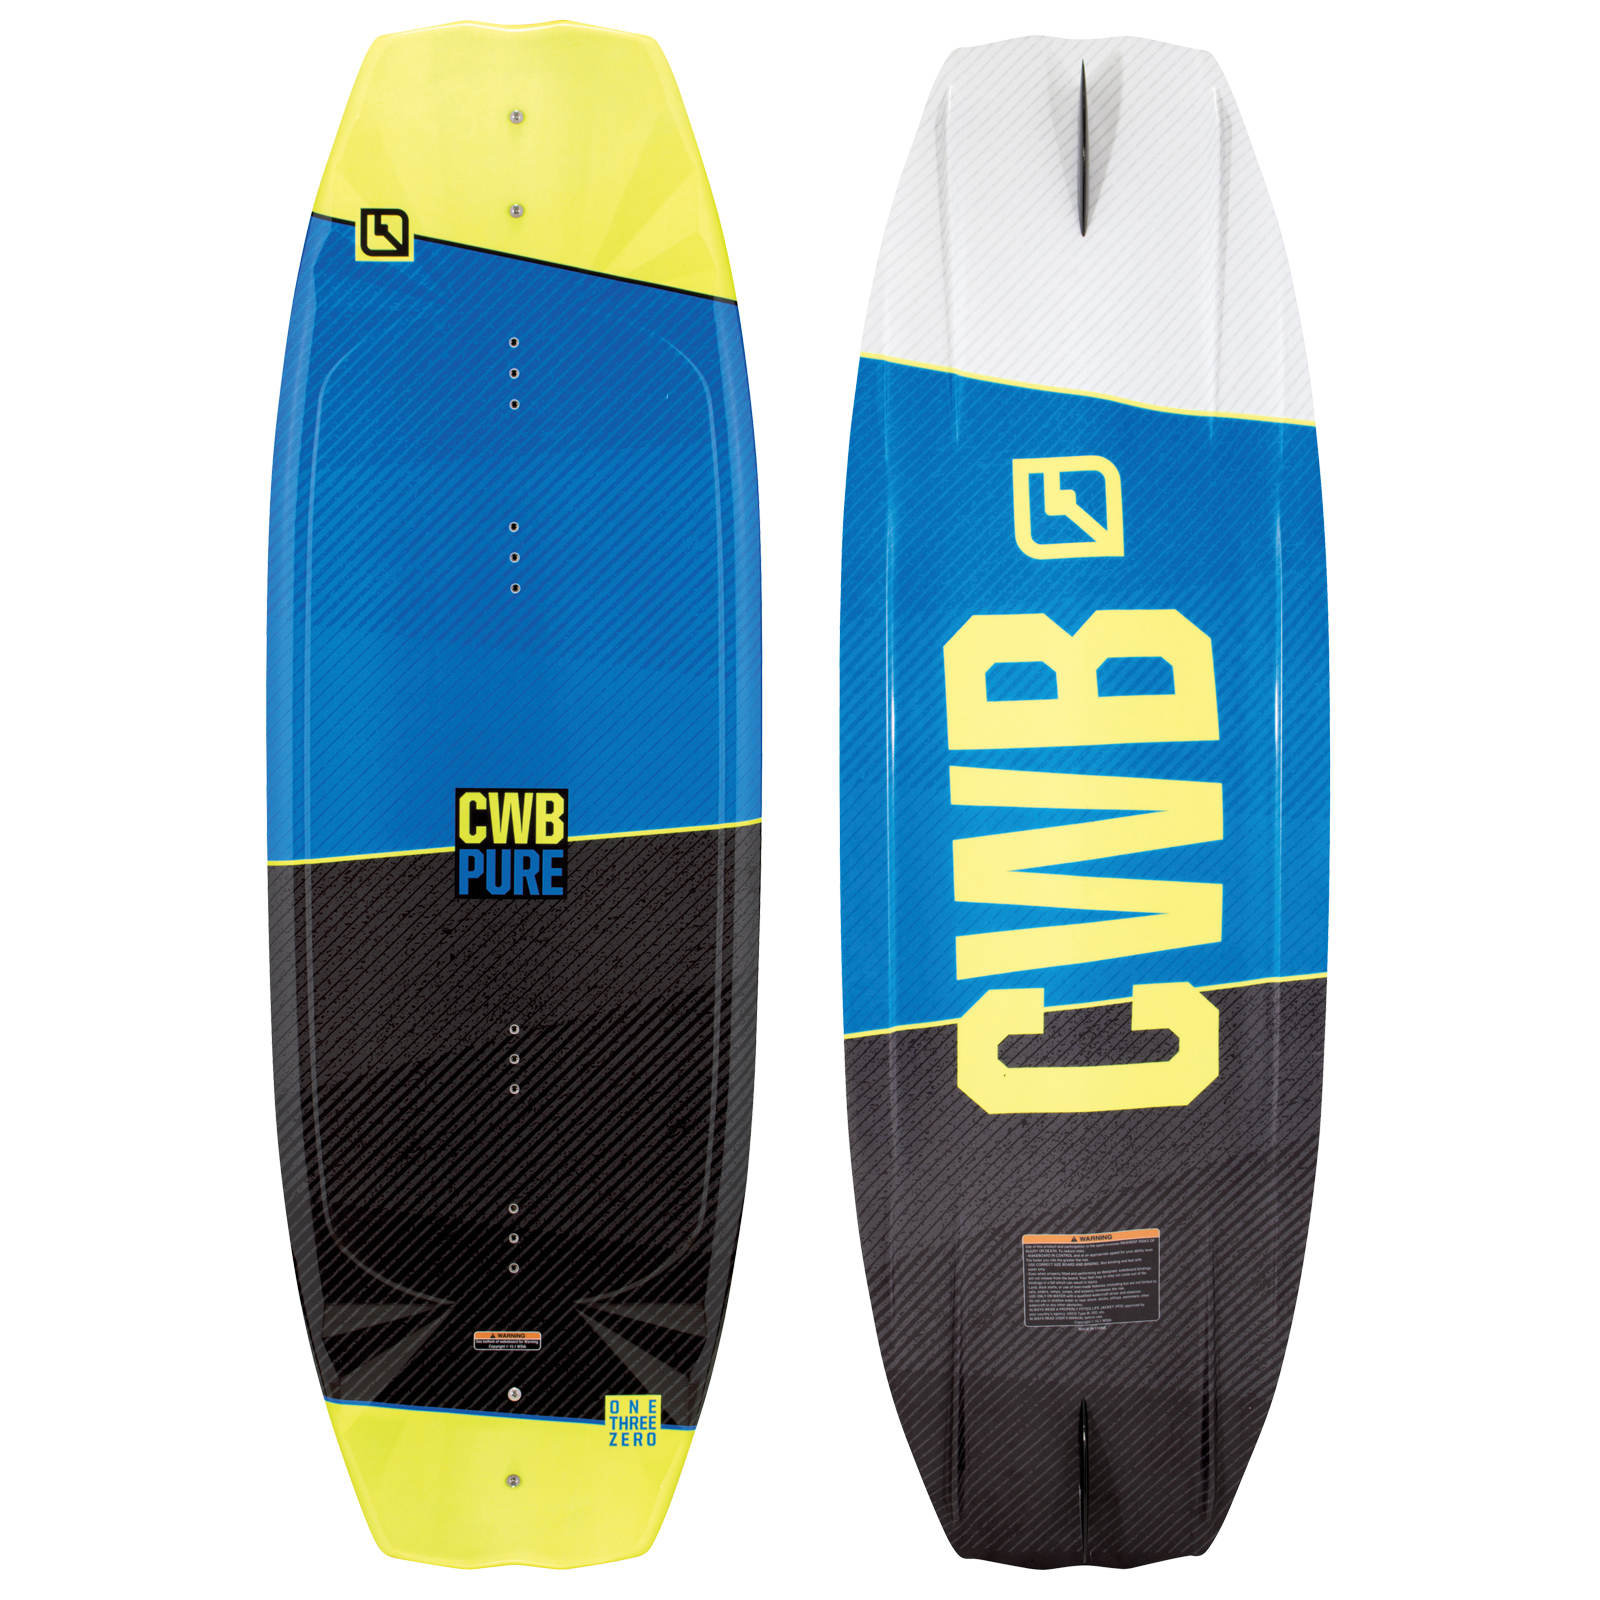 PURE 130 JR. WAKEBOARD CWB 2017